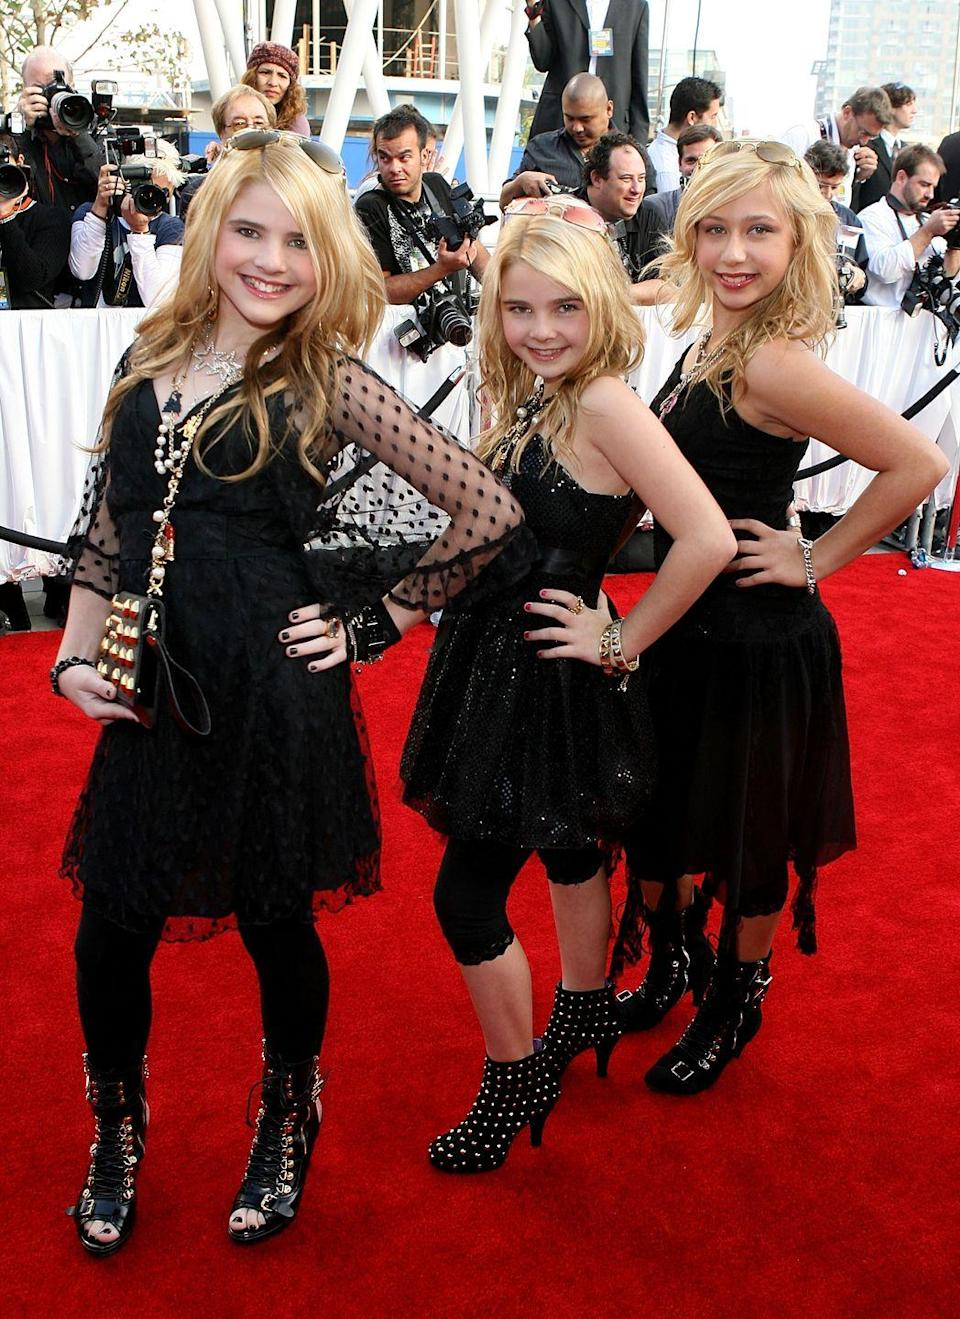 """<p>The Clique Girlz had their moment of pop fame in 2008 with the release of their only studio album, <em>Incredible</em>. The group was comprised of two sisters—Destinee and Paris Monroe—and their friend Ariel Moore. If you don't remember the blonde trio, give their hit song """"Then I Woke Up"""" a listen. </p>"""